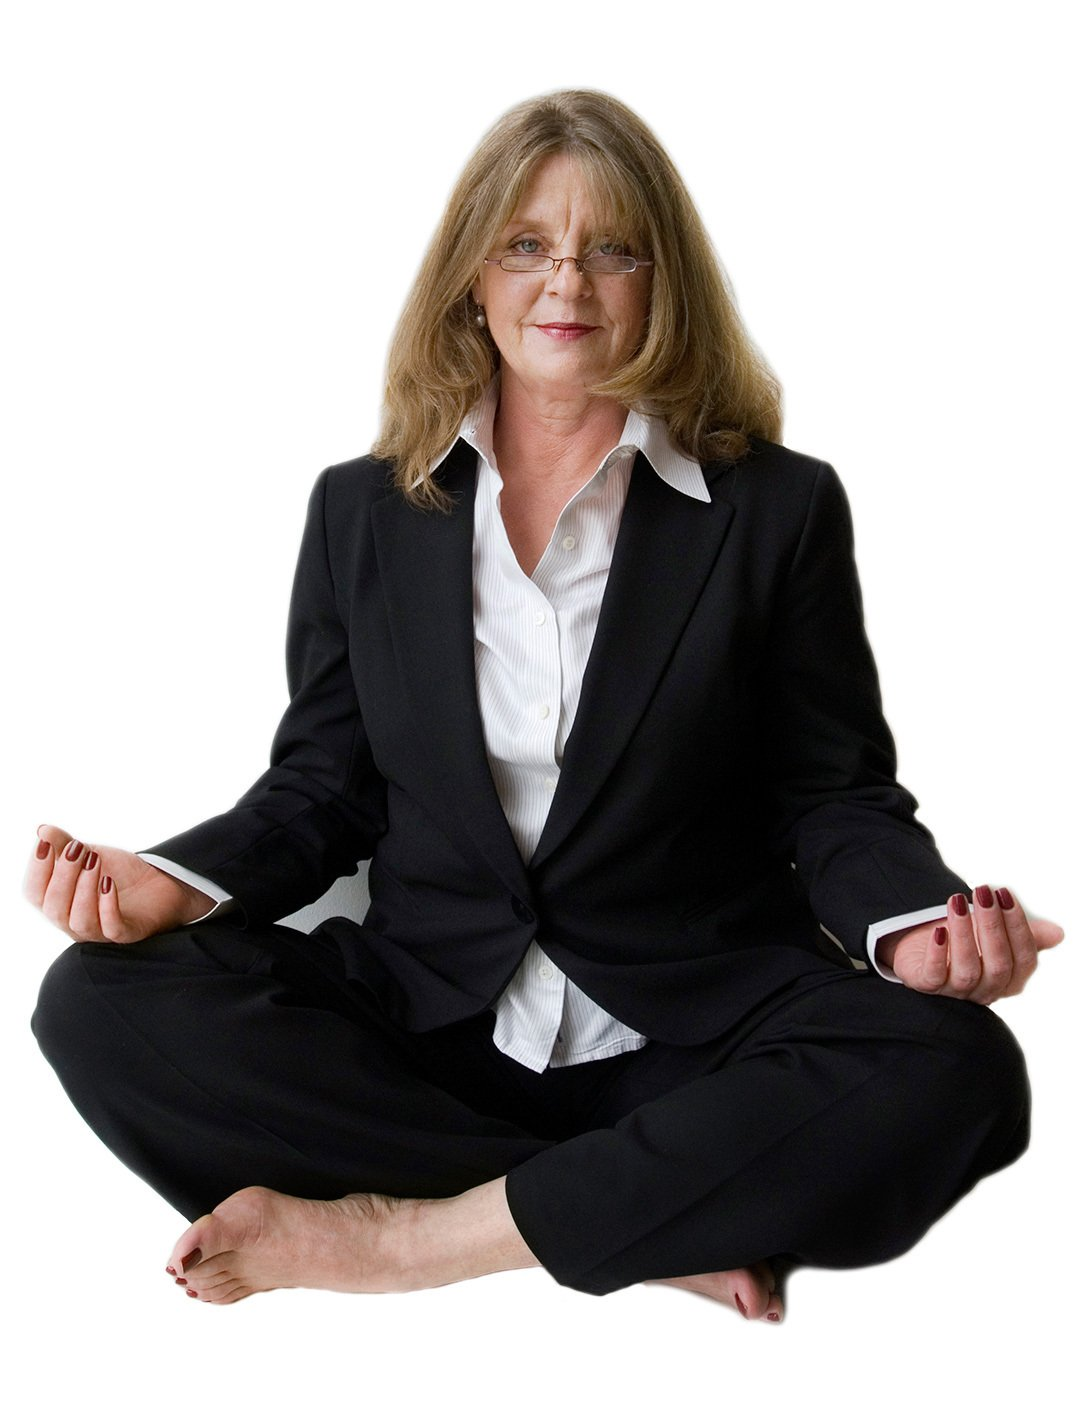 Susan Burns International Lawyer and Business Strategist